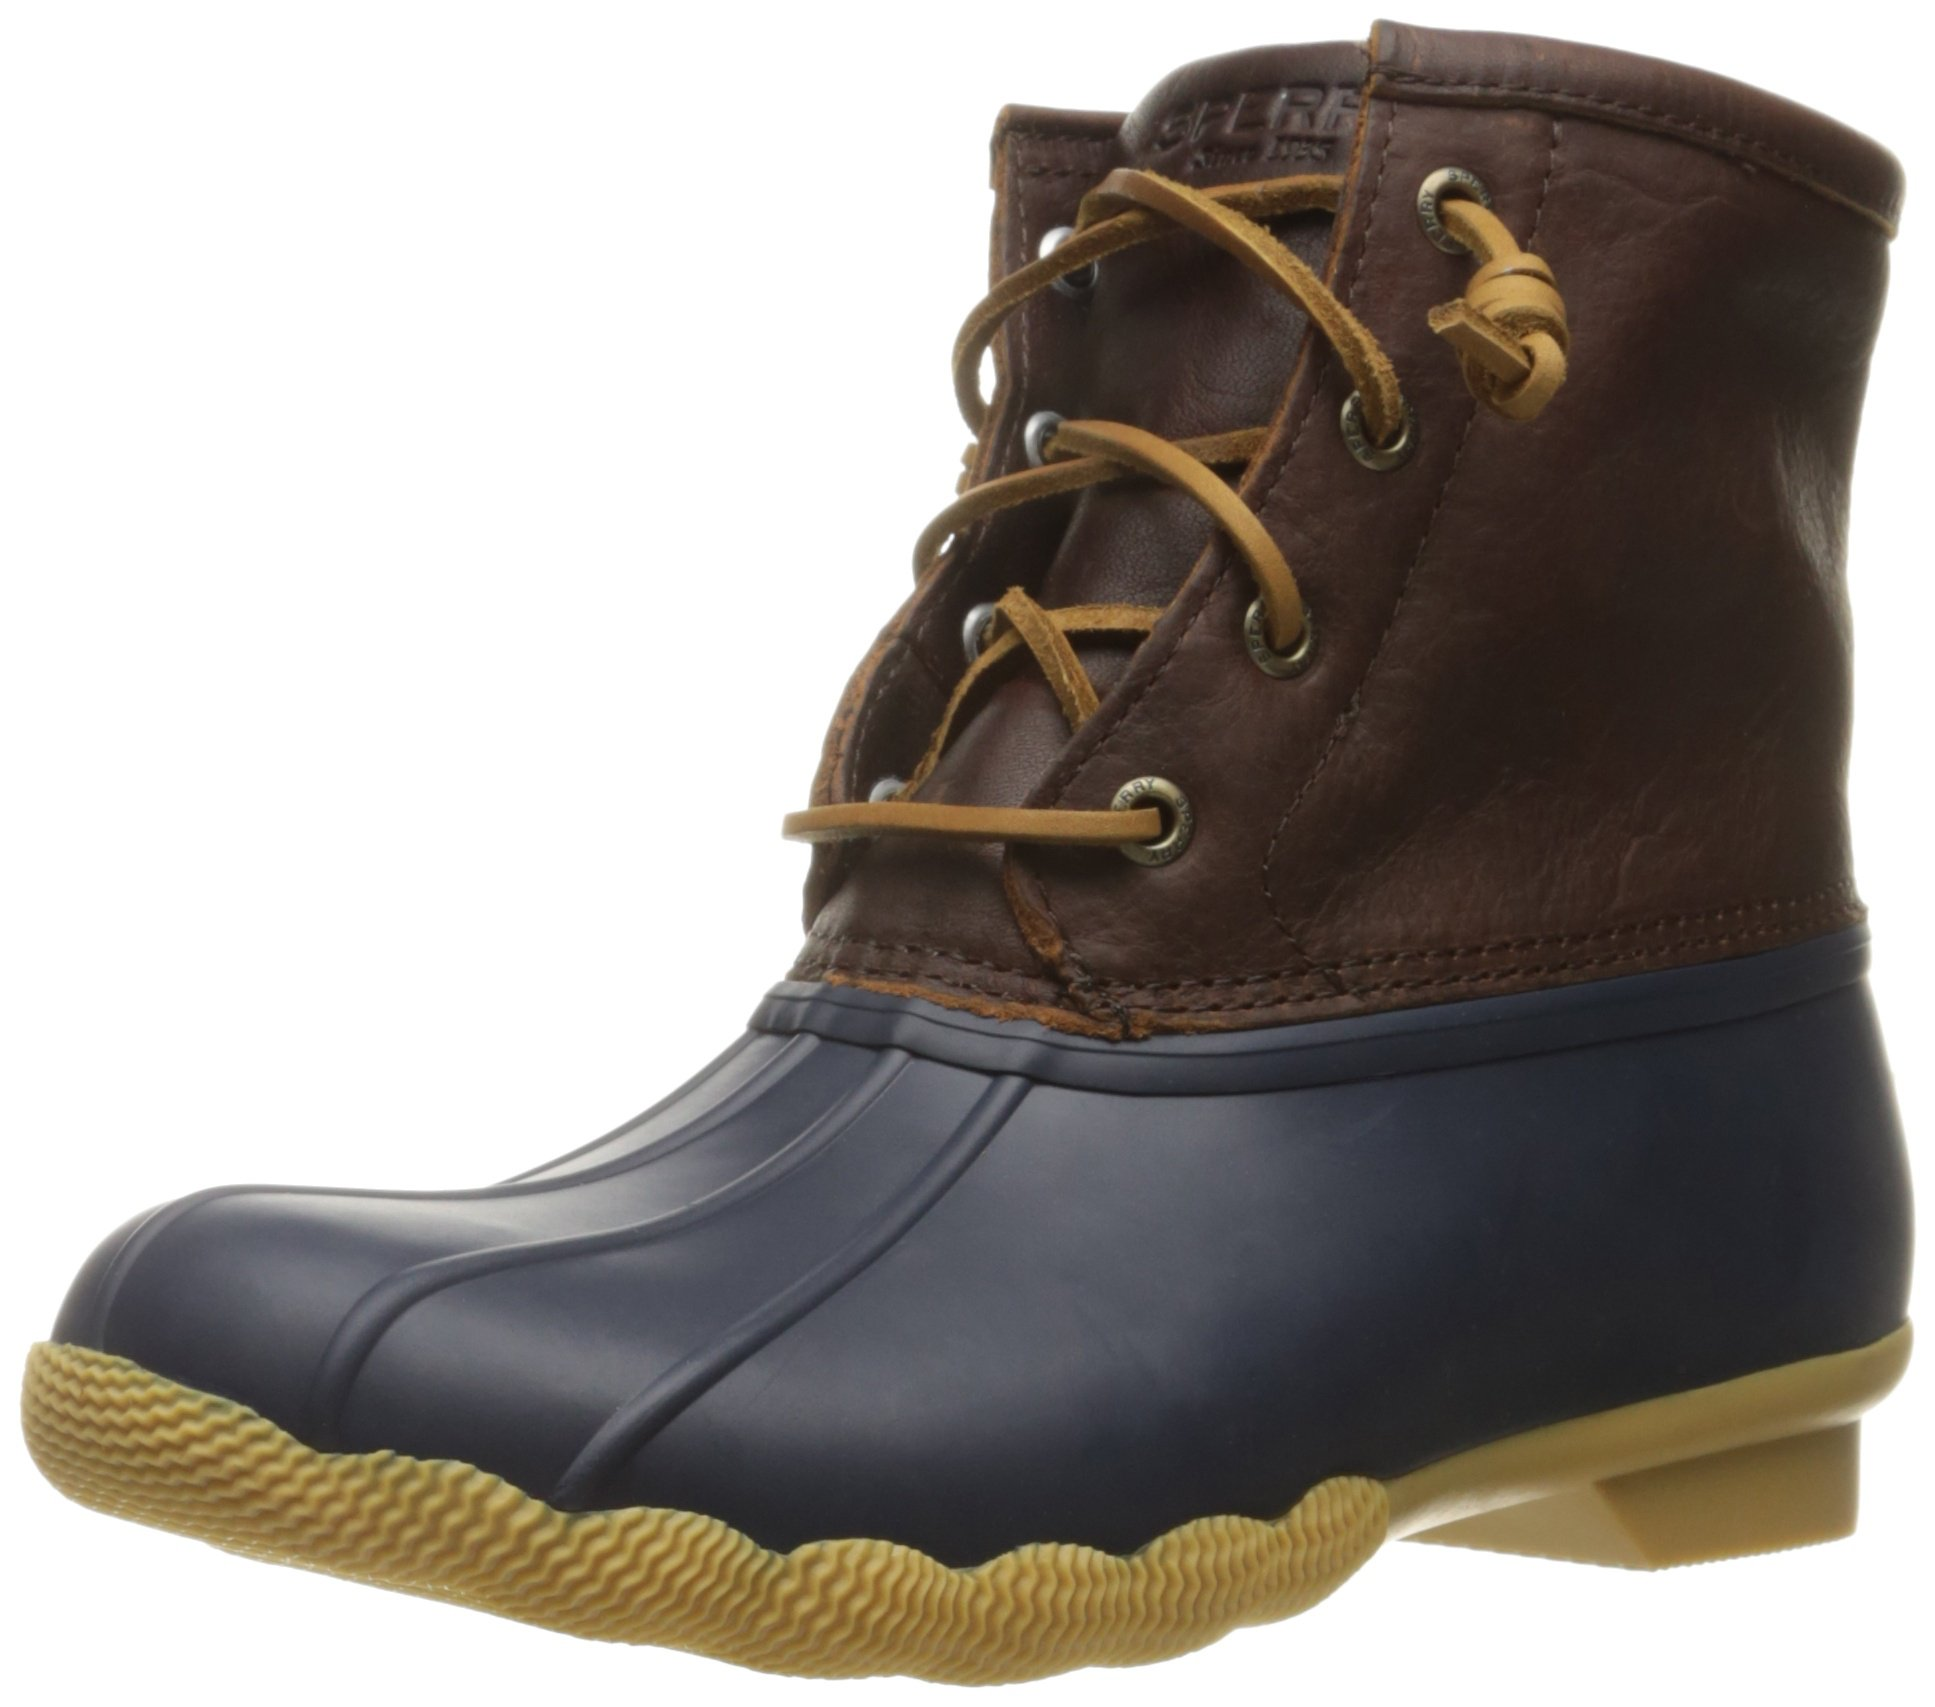 Sperry Top-Sider Women's Saltwater Thinsulate Rain Boot, Tan/Navy, 8 M US